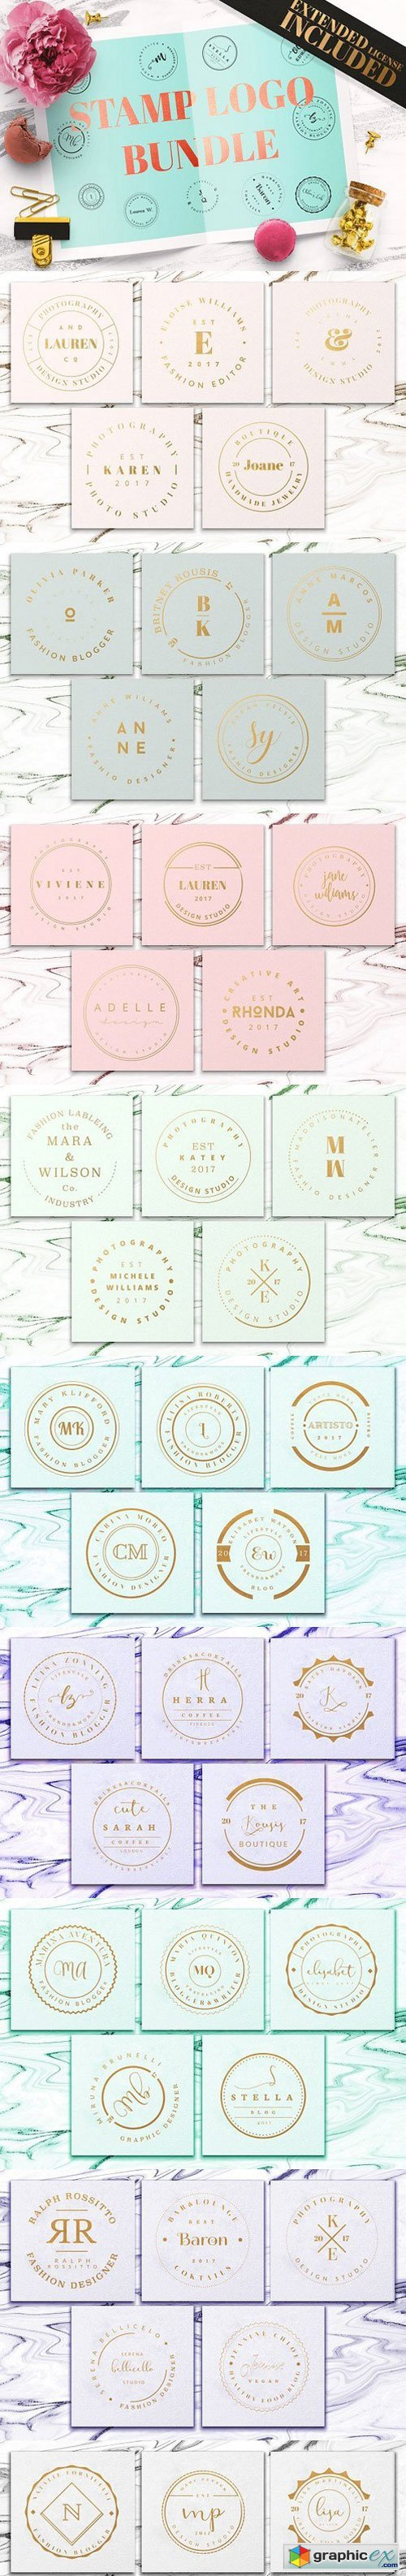 90 Stamp Logo Templates Bundle